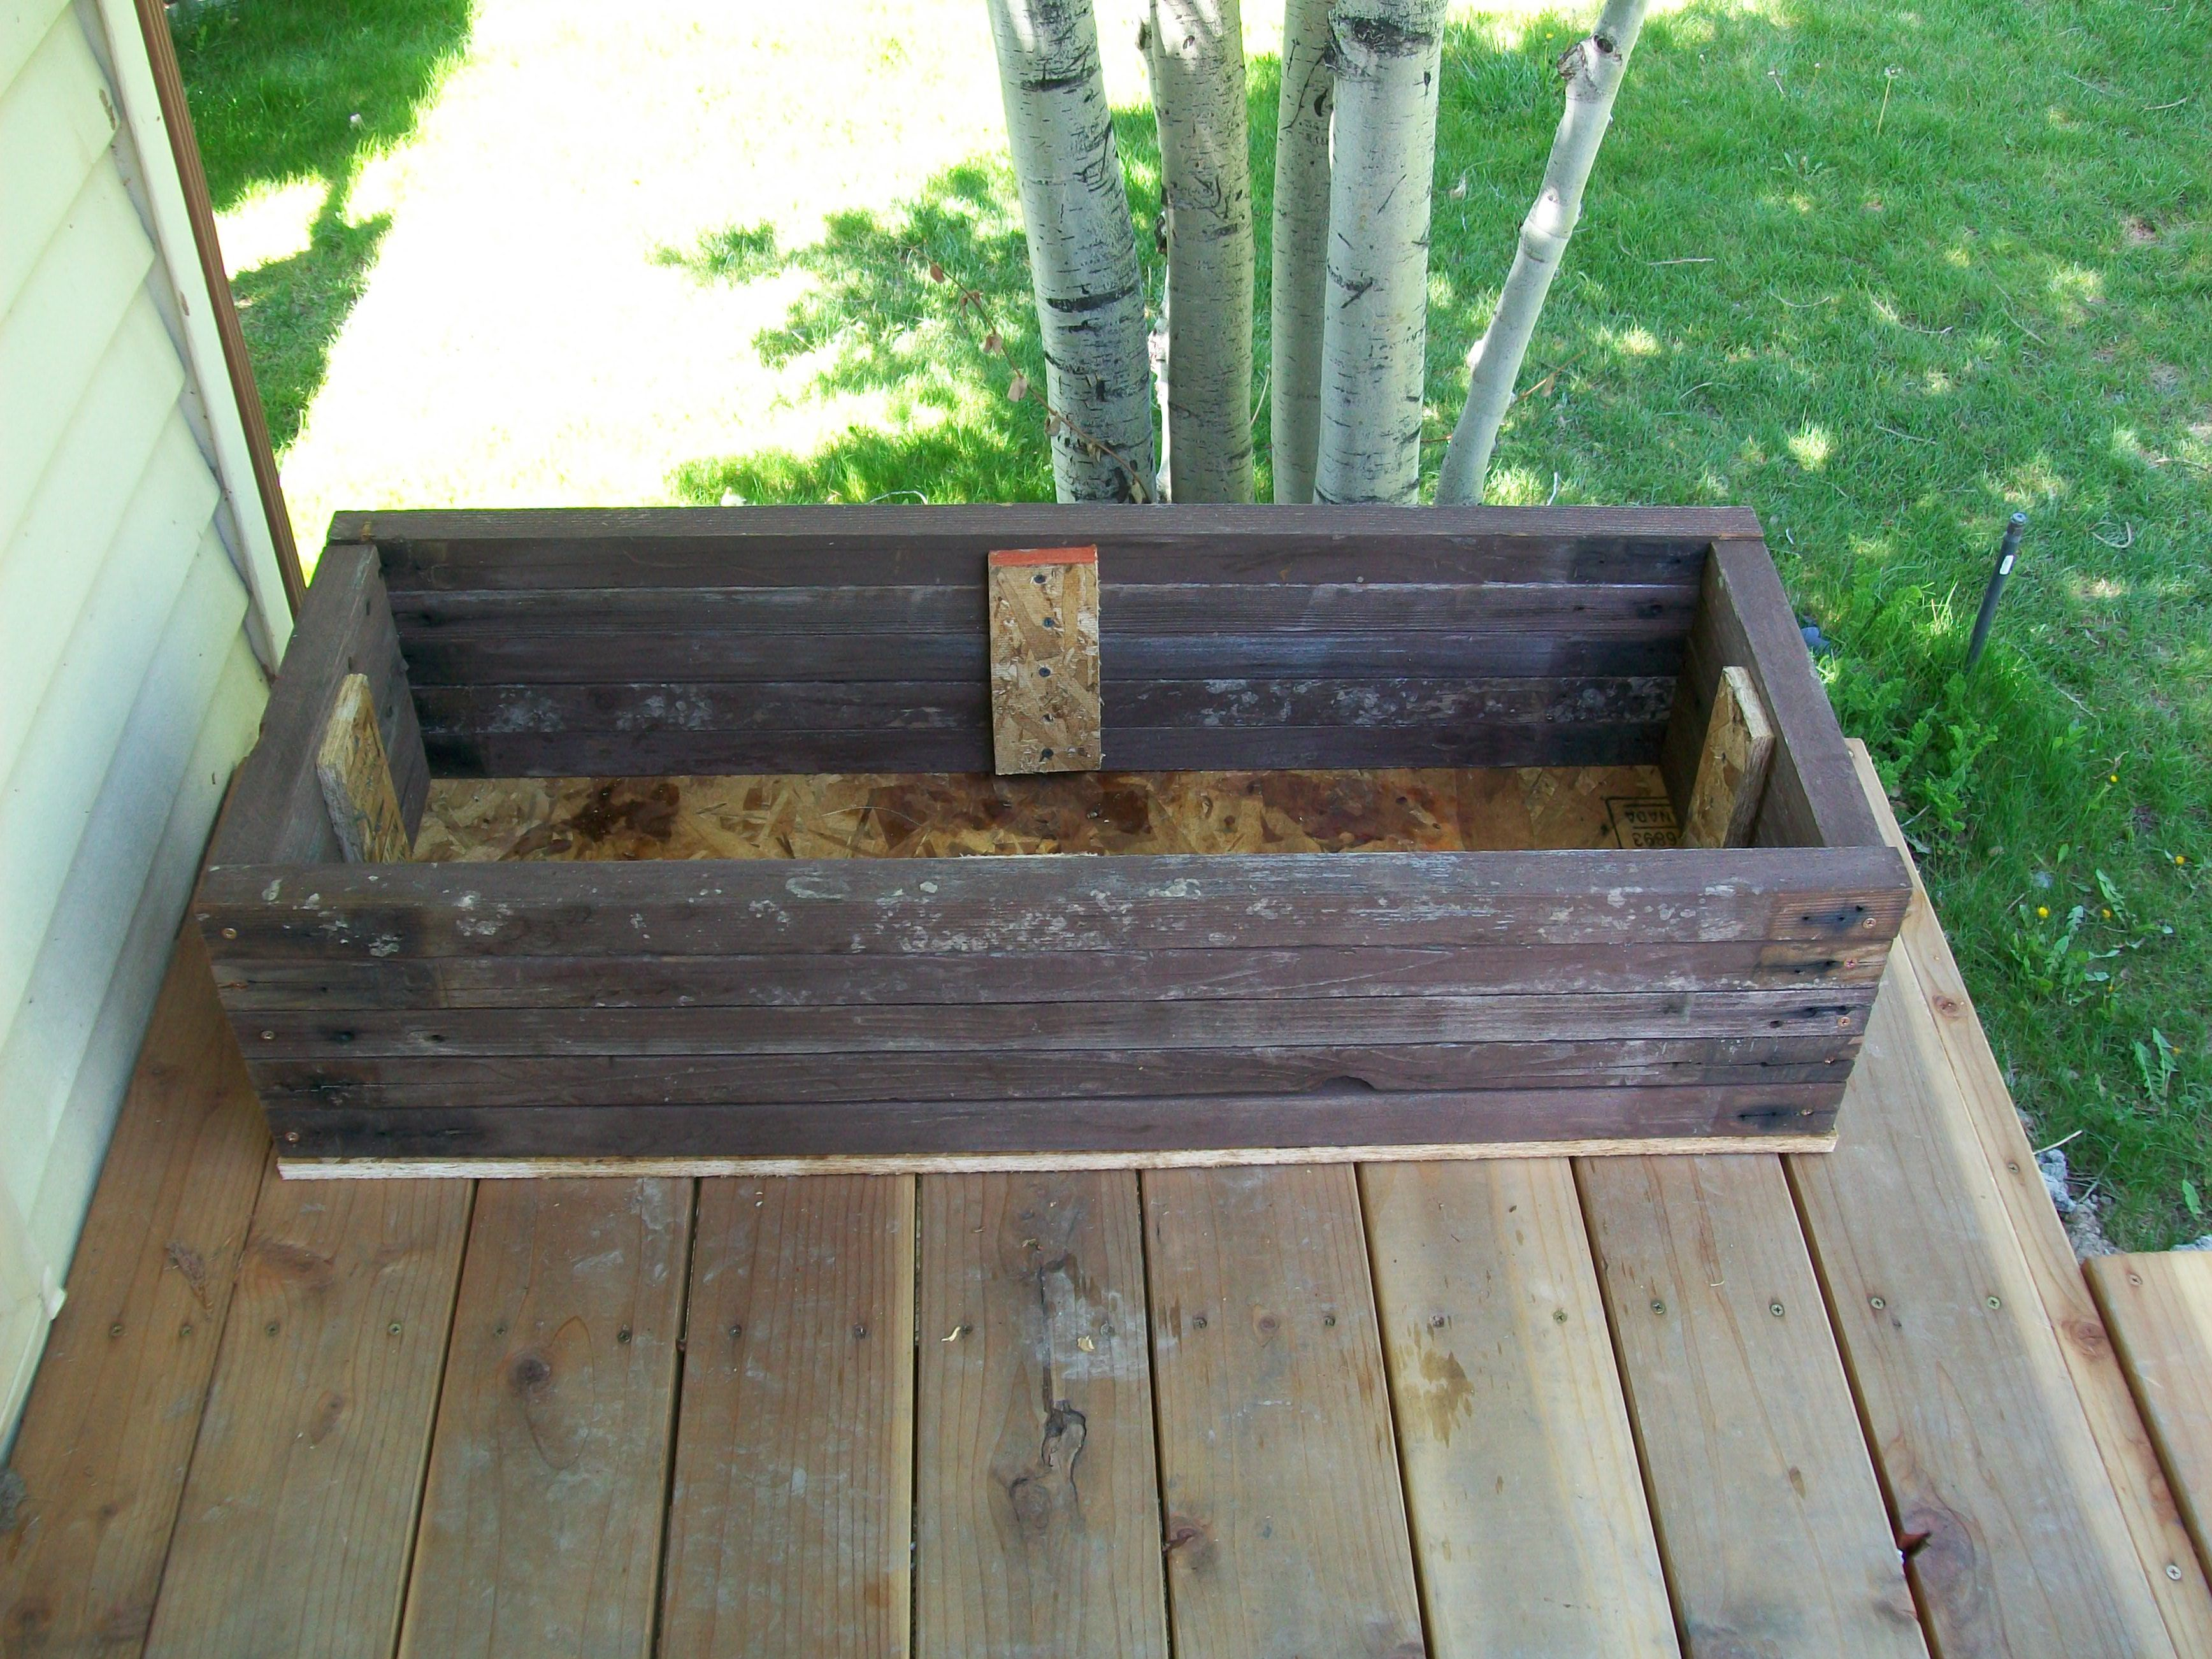 How to build a planter box for a deck - How To Build Flower Boxes From Old Deck Or Fence Wood Ehow Uk